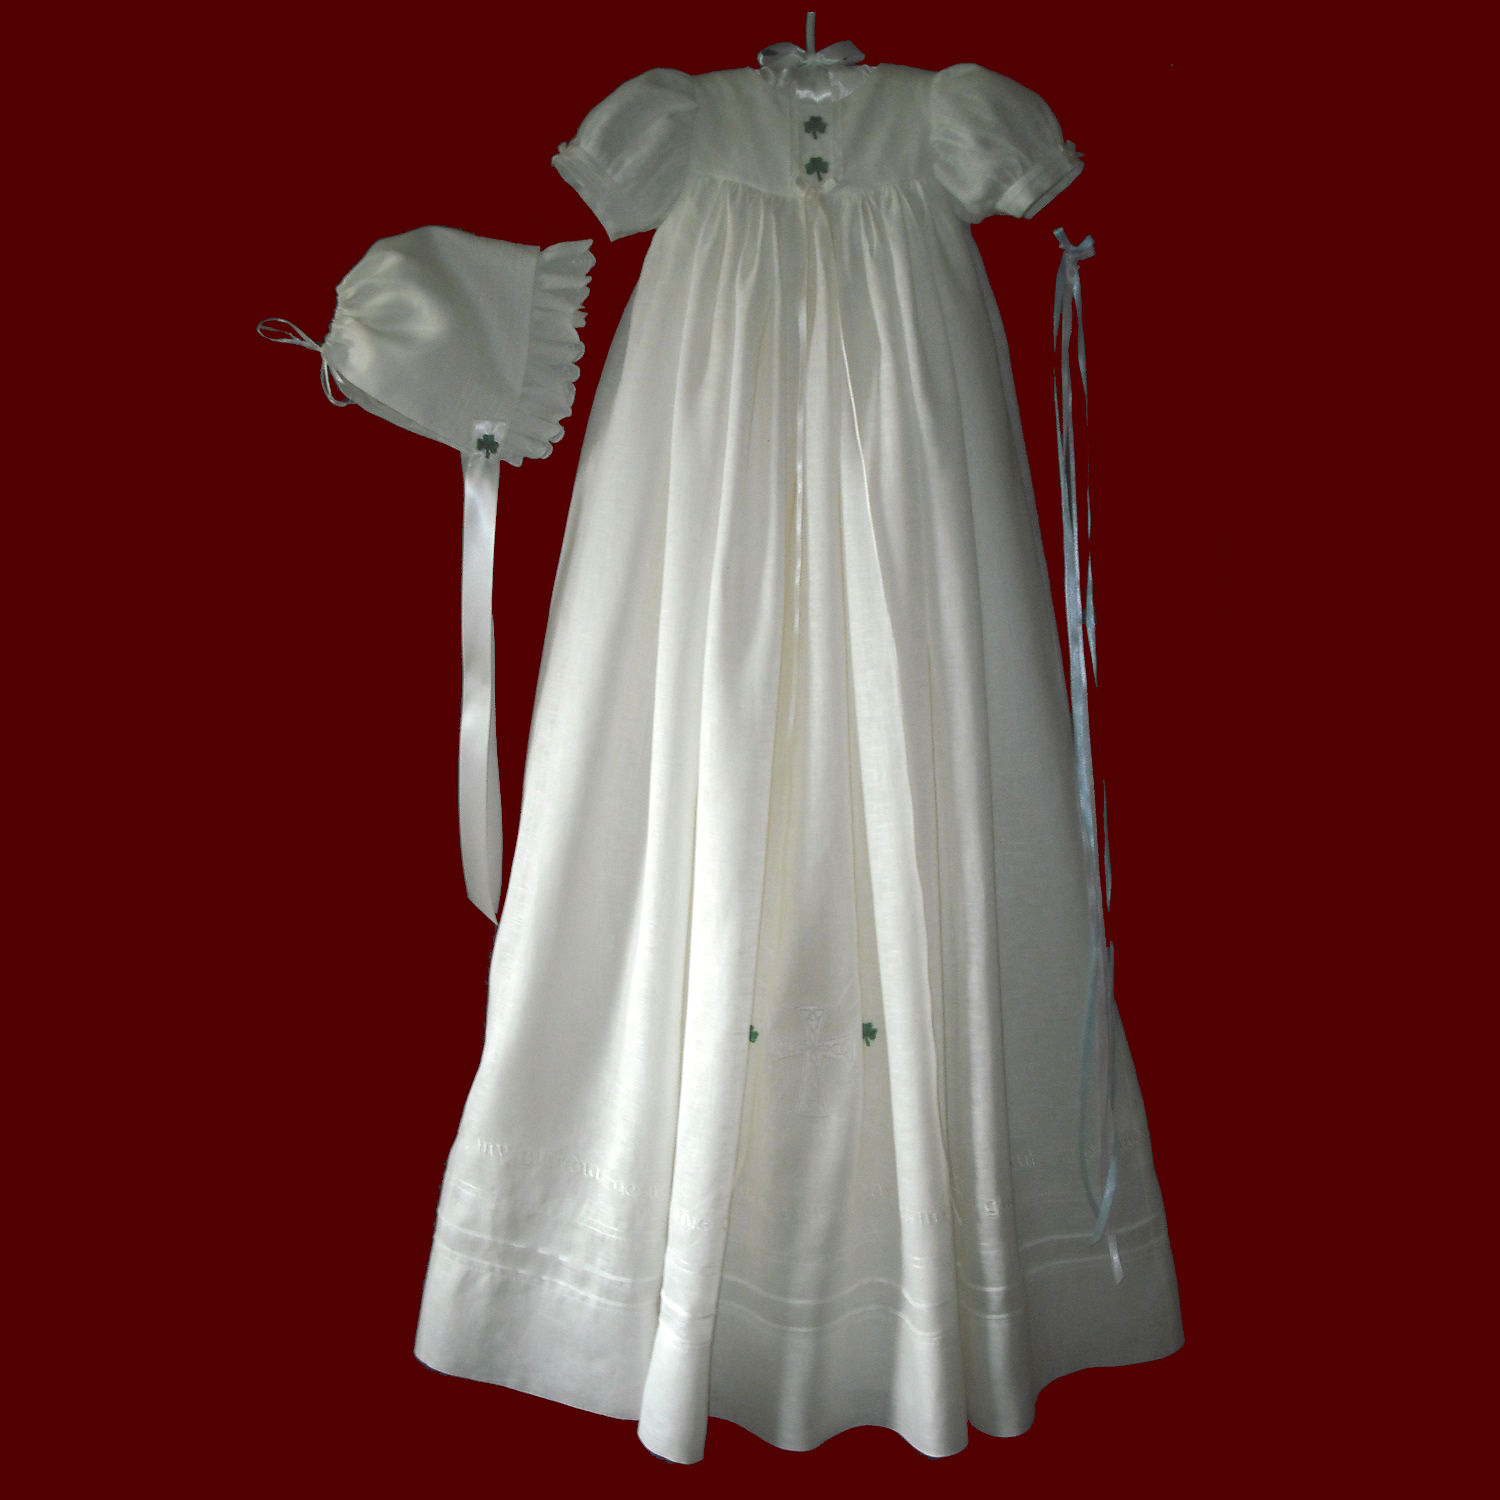 Irish Linen Unisex Embroidered Guardian Angel Prayer Gown, Personalized Slip & Bonnets